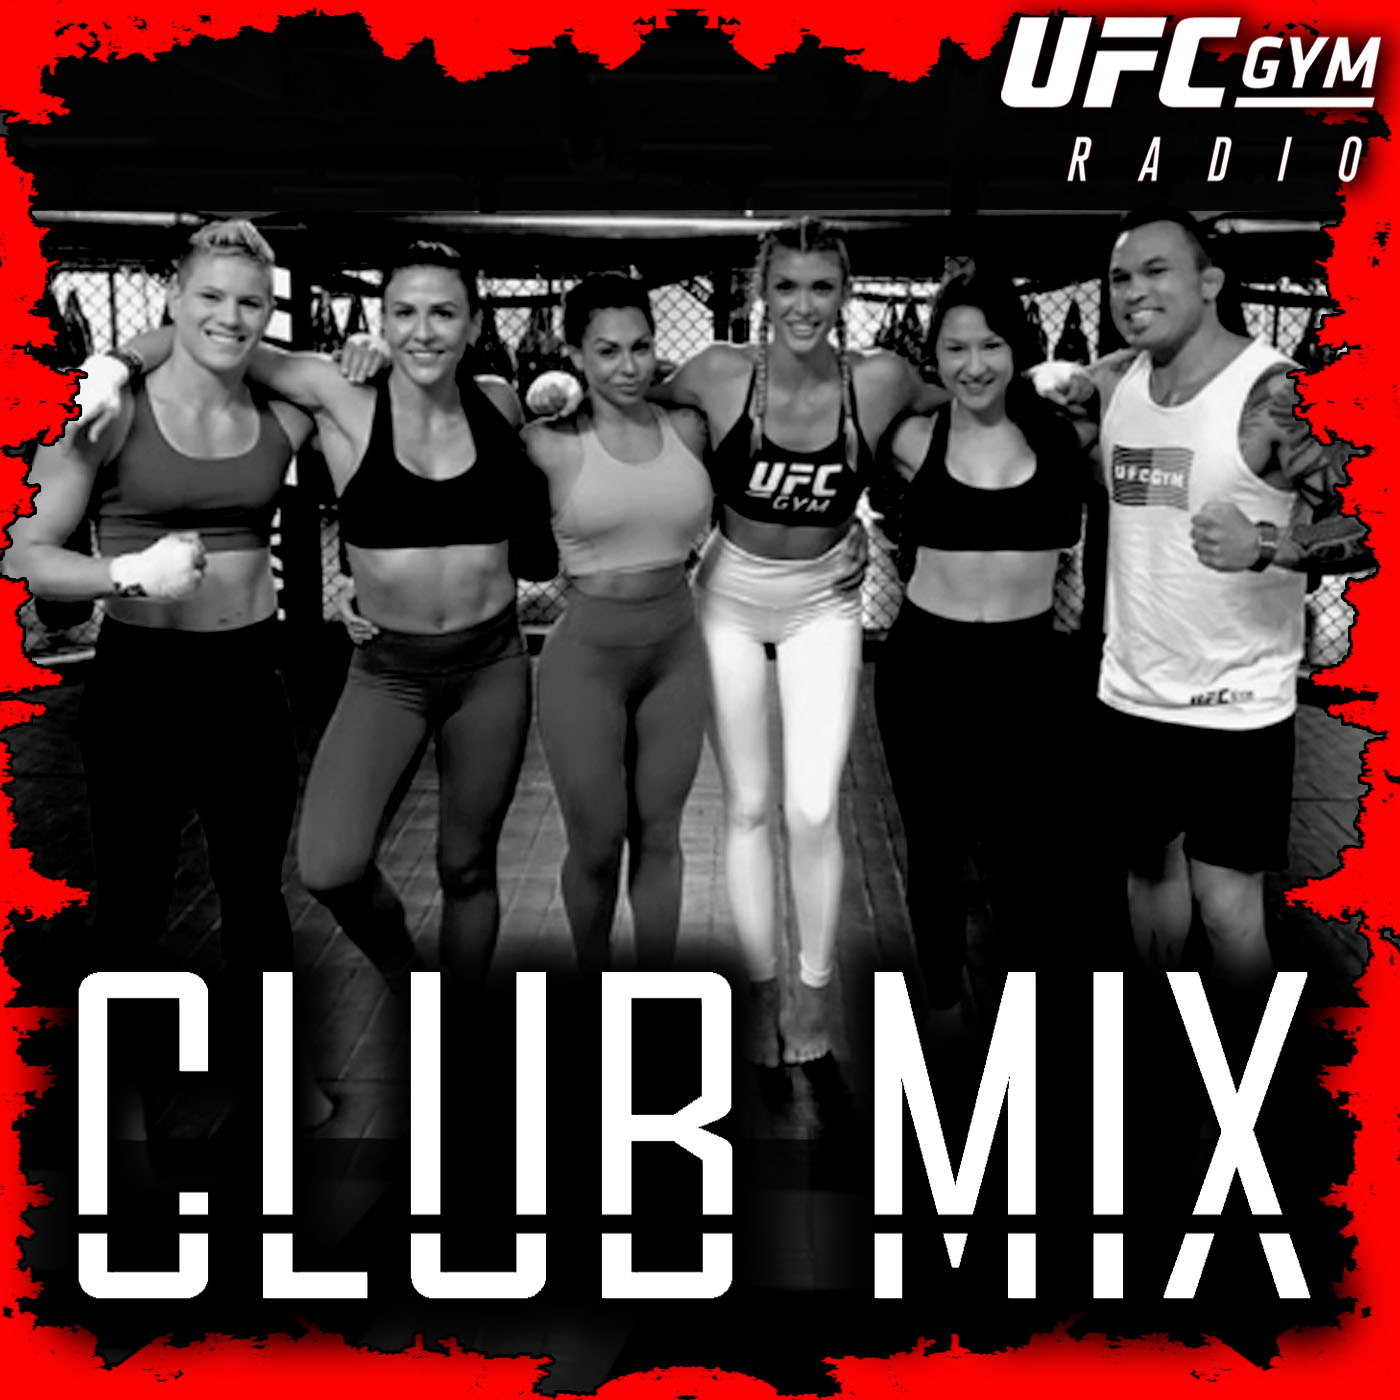 UFC GYM RADIO 494 - The Club Mix